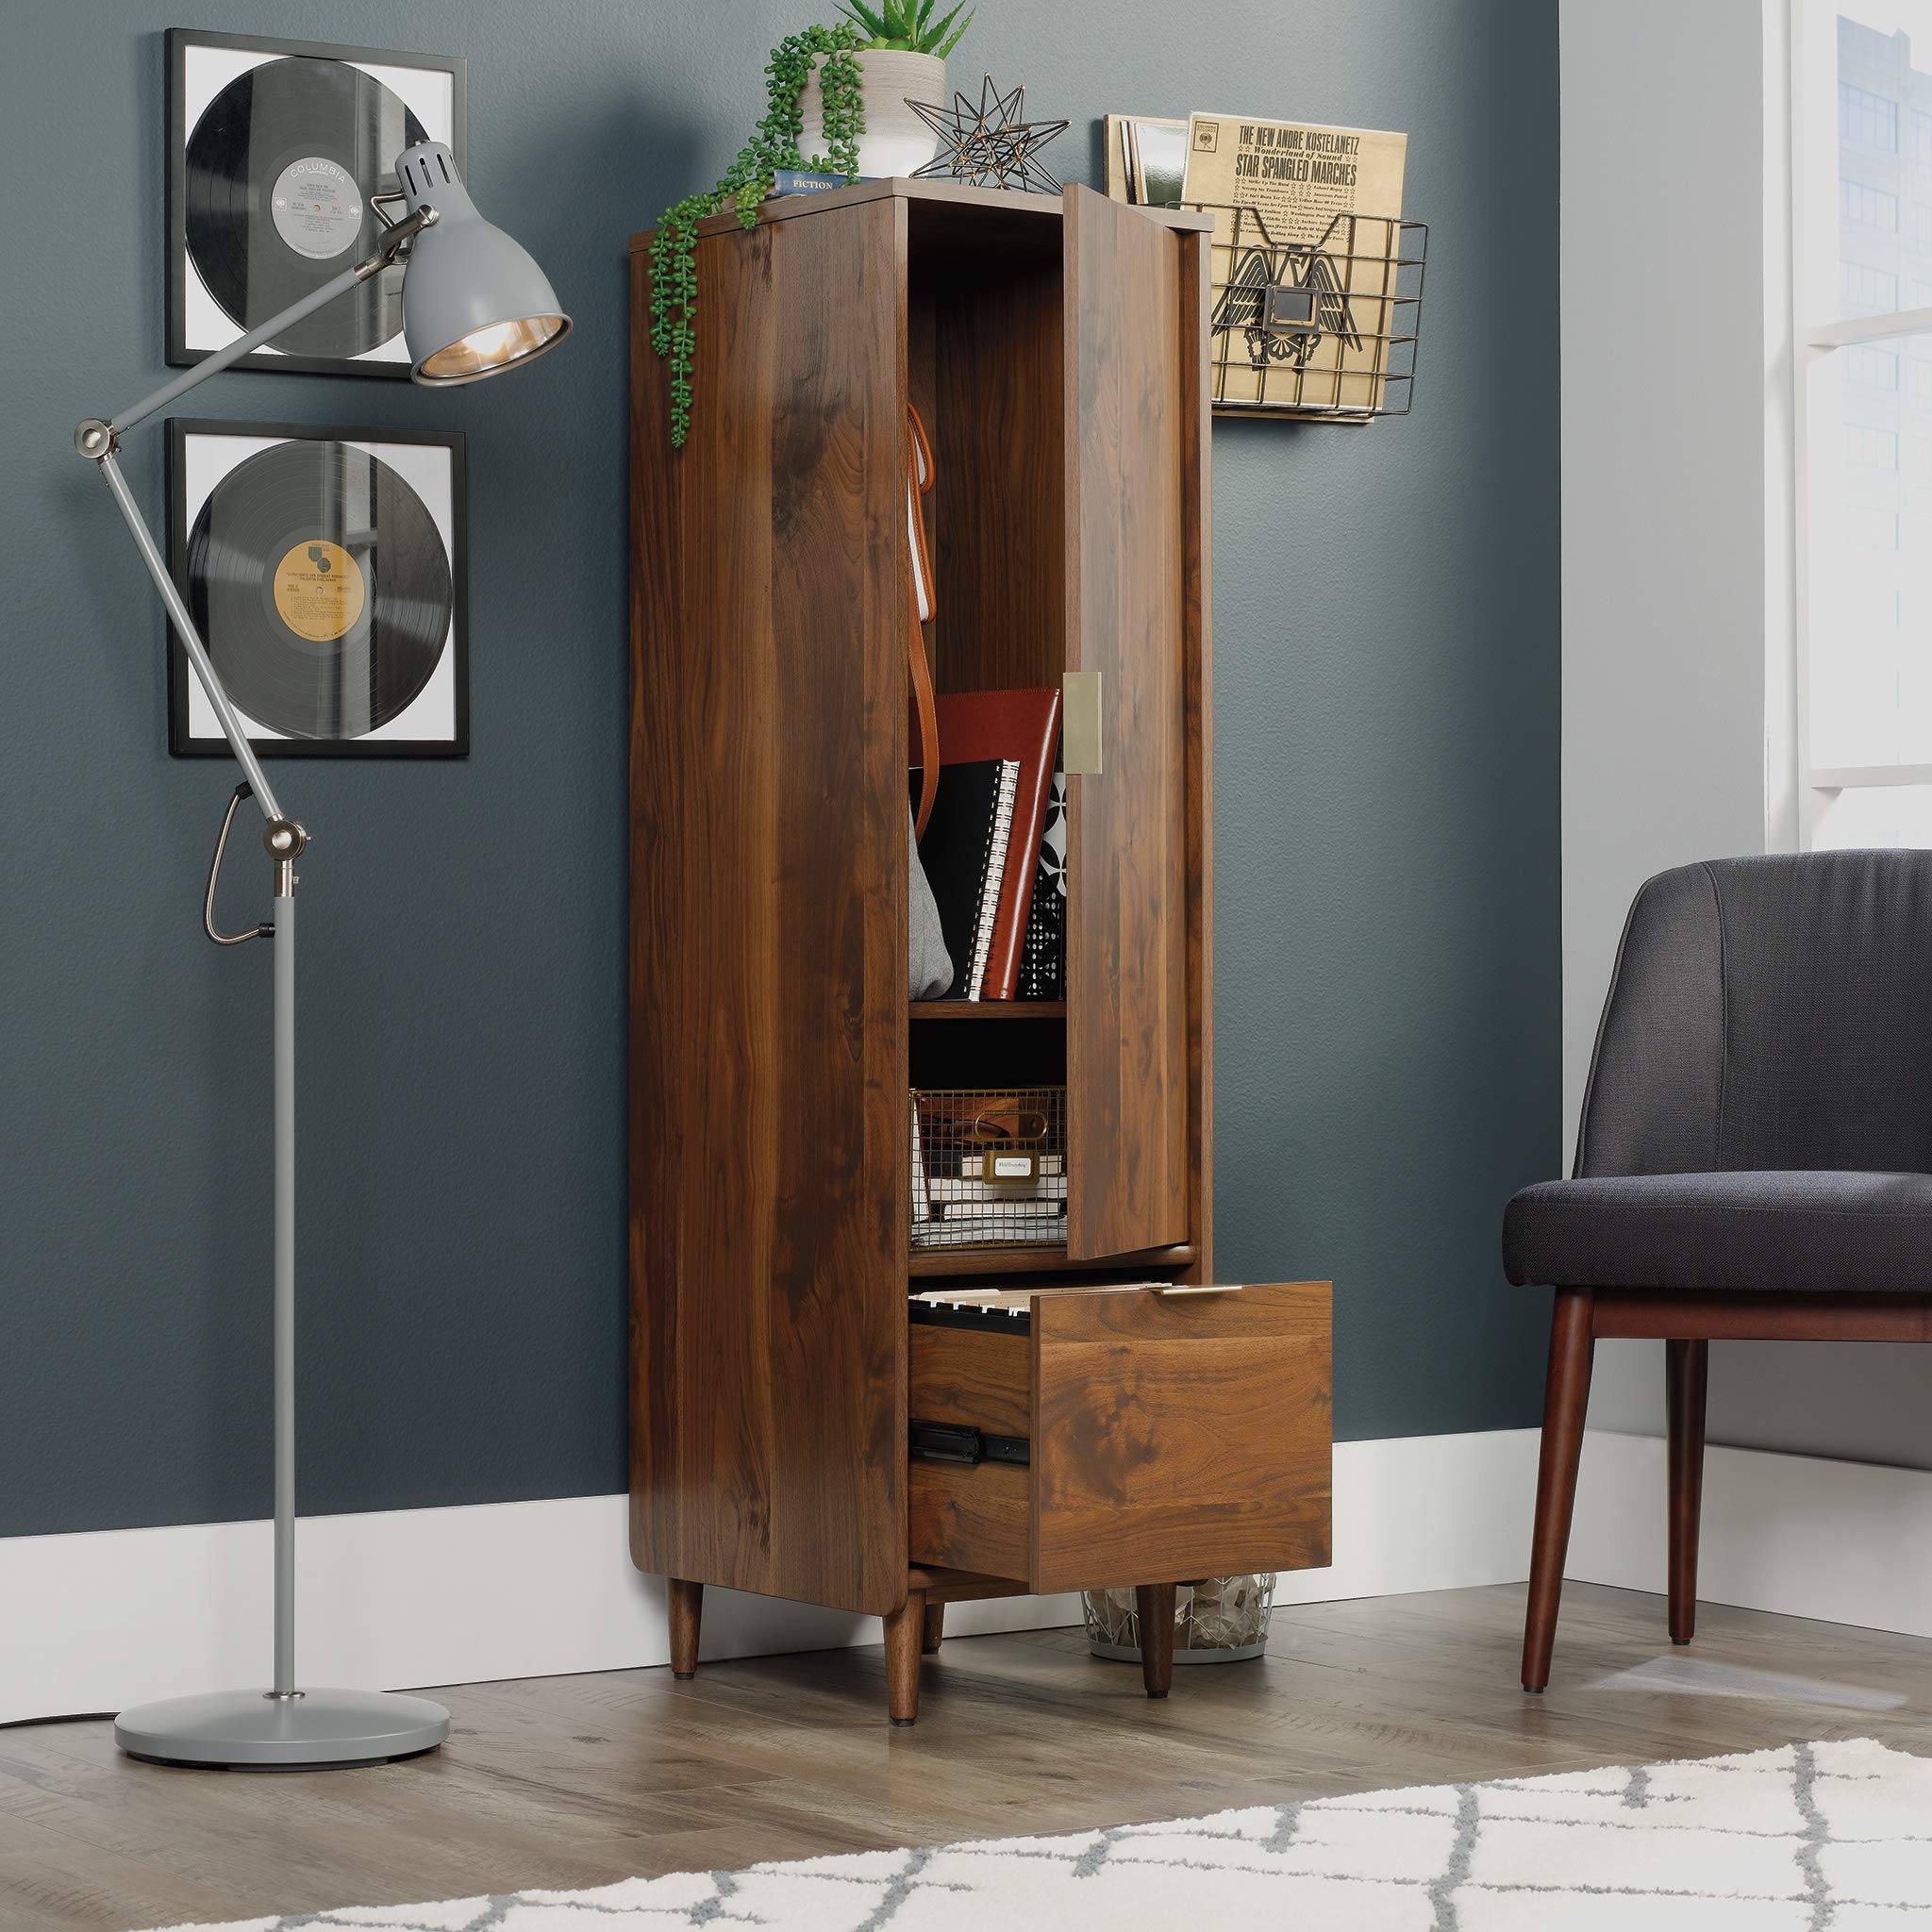 Sauder 421318 Clifford Place Storage Cabinet with File, L: 15.51'' x W: 18.50'' x H: 58.27'', Grand Walnut Finish by Sauder (Image #5)